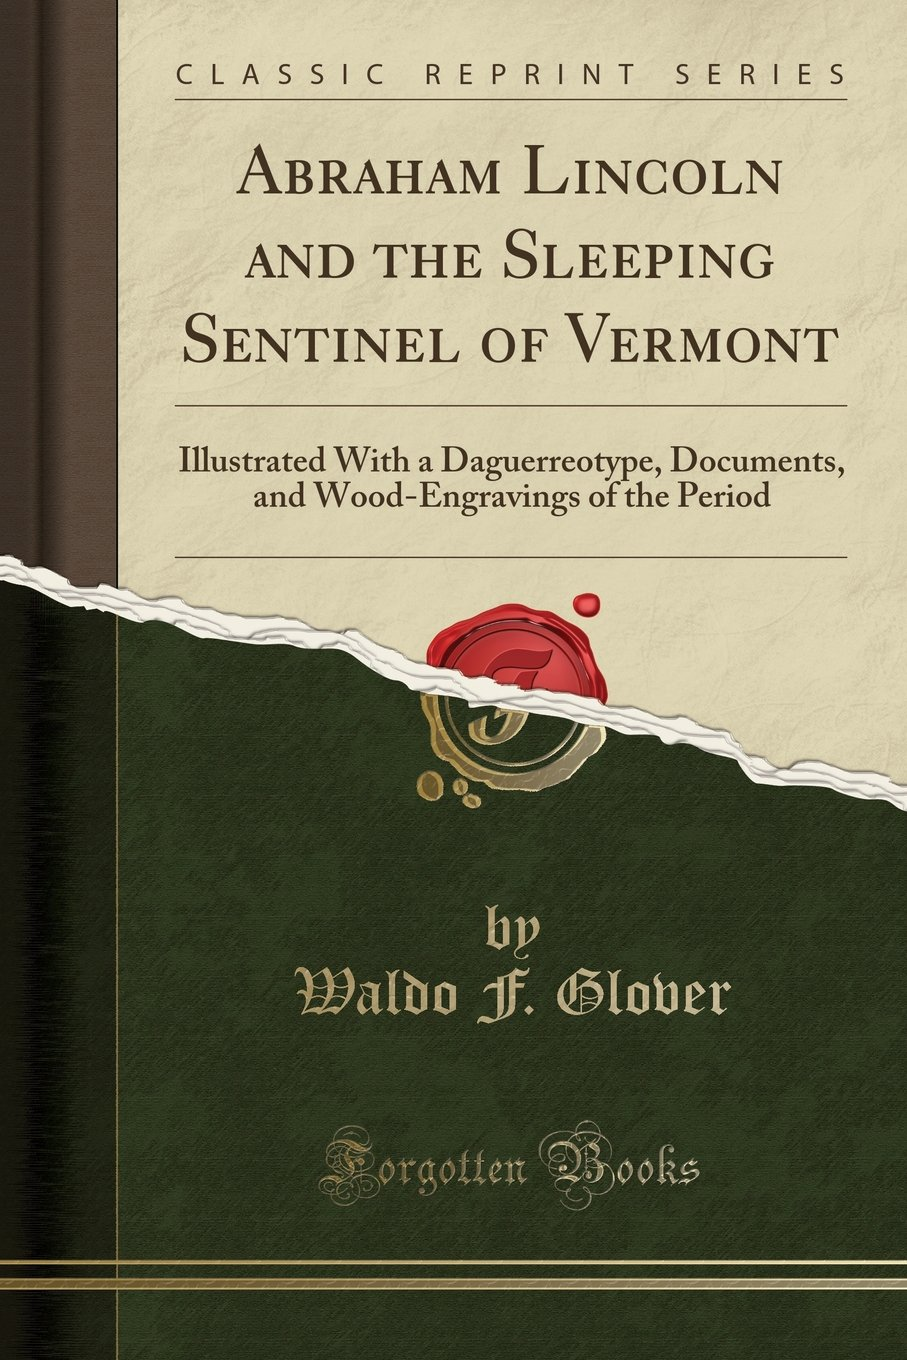 Abraham Lincoln and the Sleeping Sentinel of Vermont: Illustrated With a Daguerreotype, Documents, and Wood-Engravings of the Period (Classic Reprint)